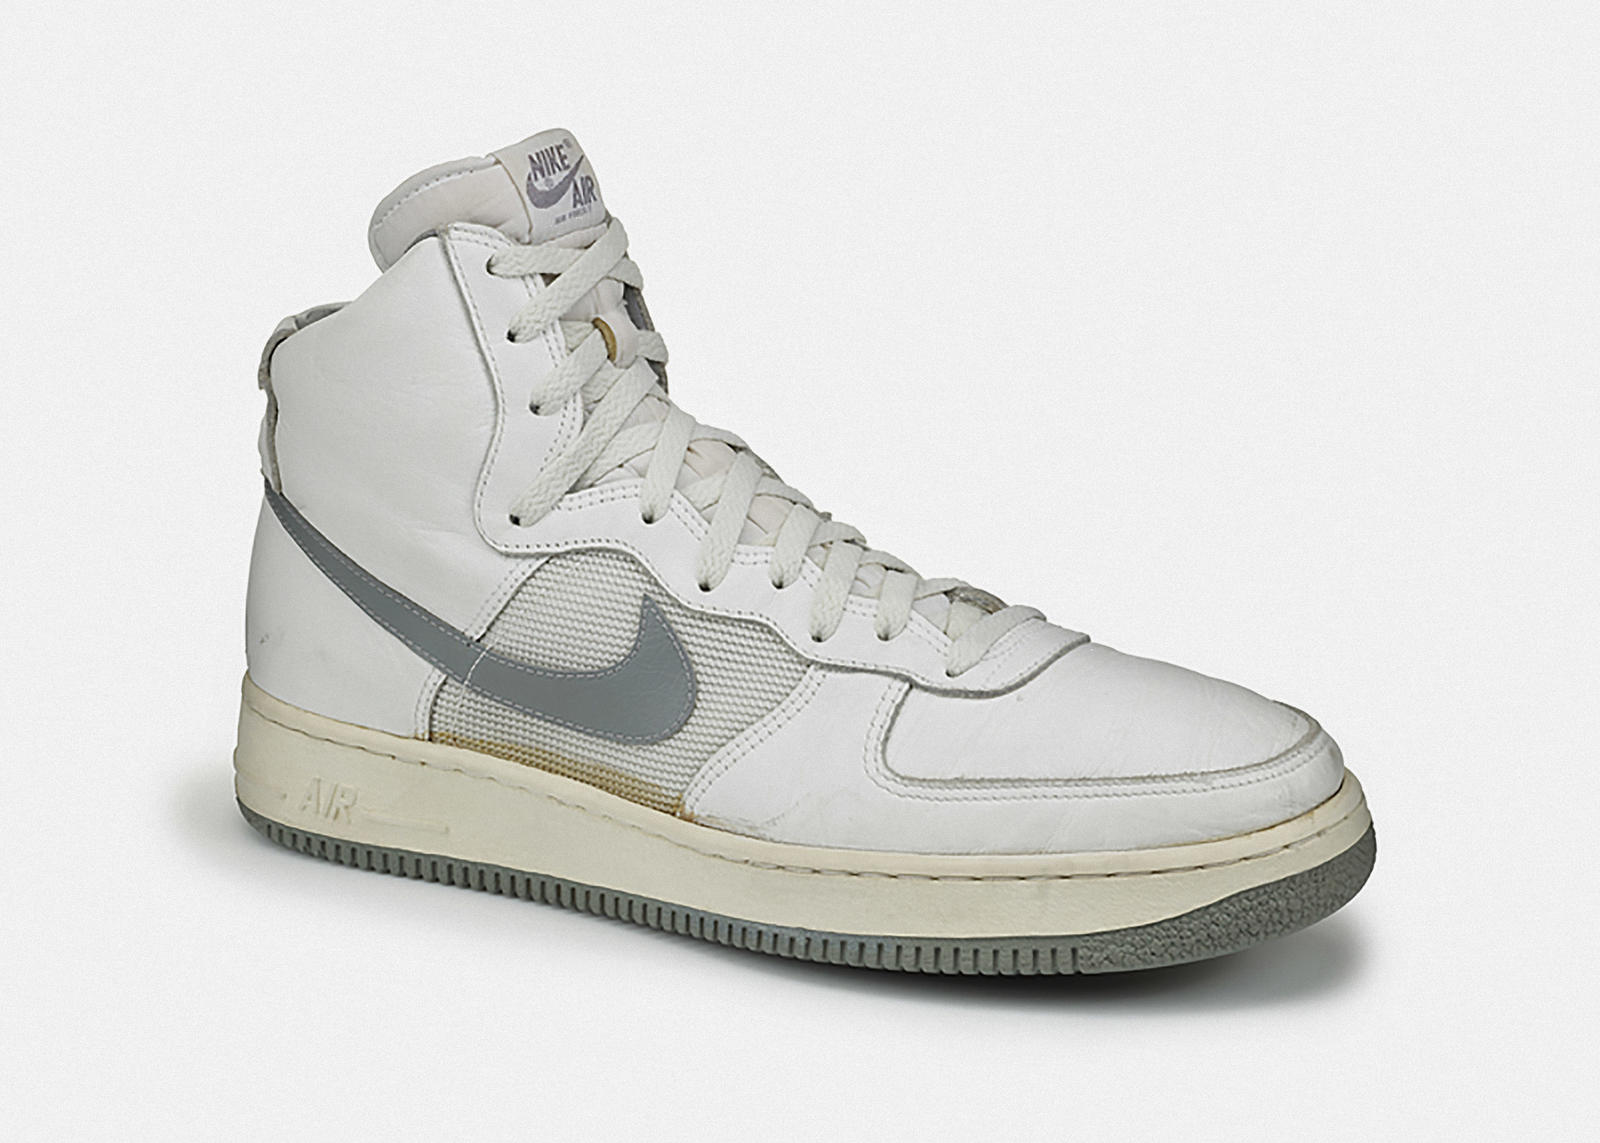 4be560ed885 Designer Bruce Kilgore Dishes on Nike Air Force 1 - Nike News